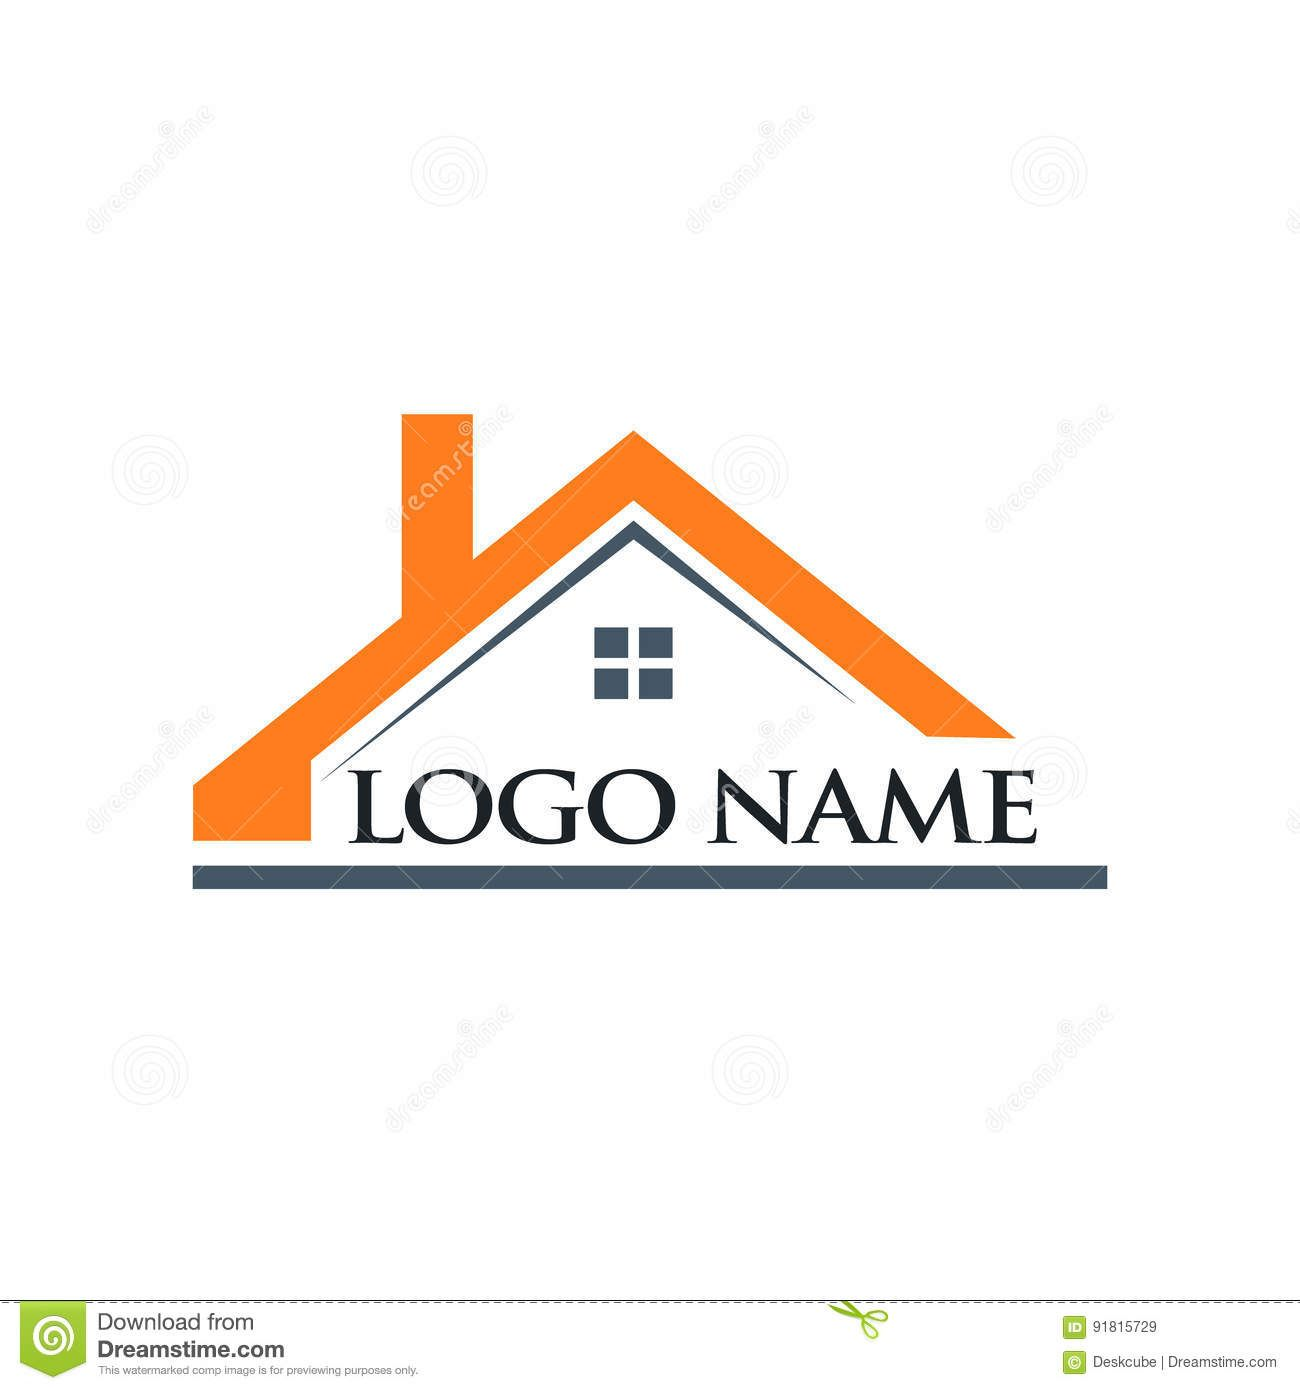 Roof House And Logo Name Illustration Real Estate Logo Inspiration Home Logo House Roof